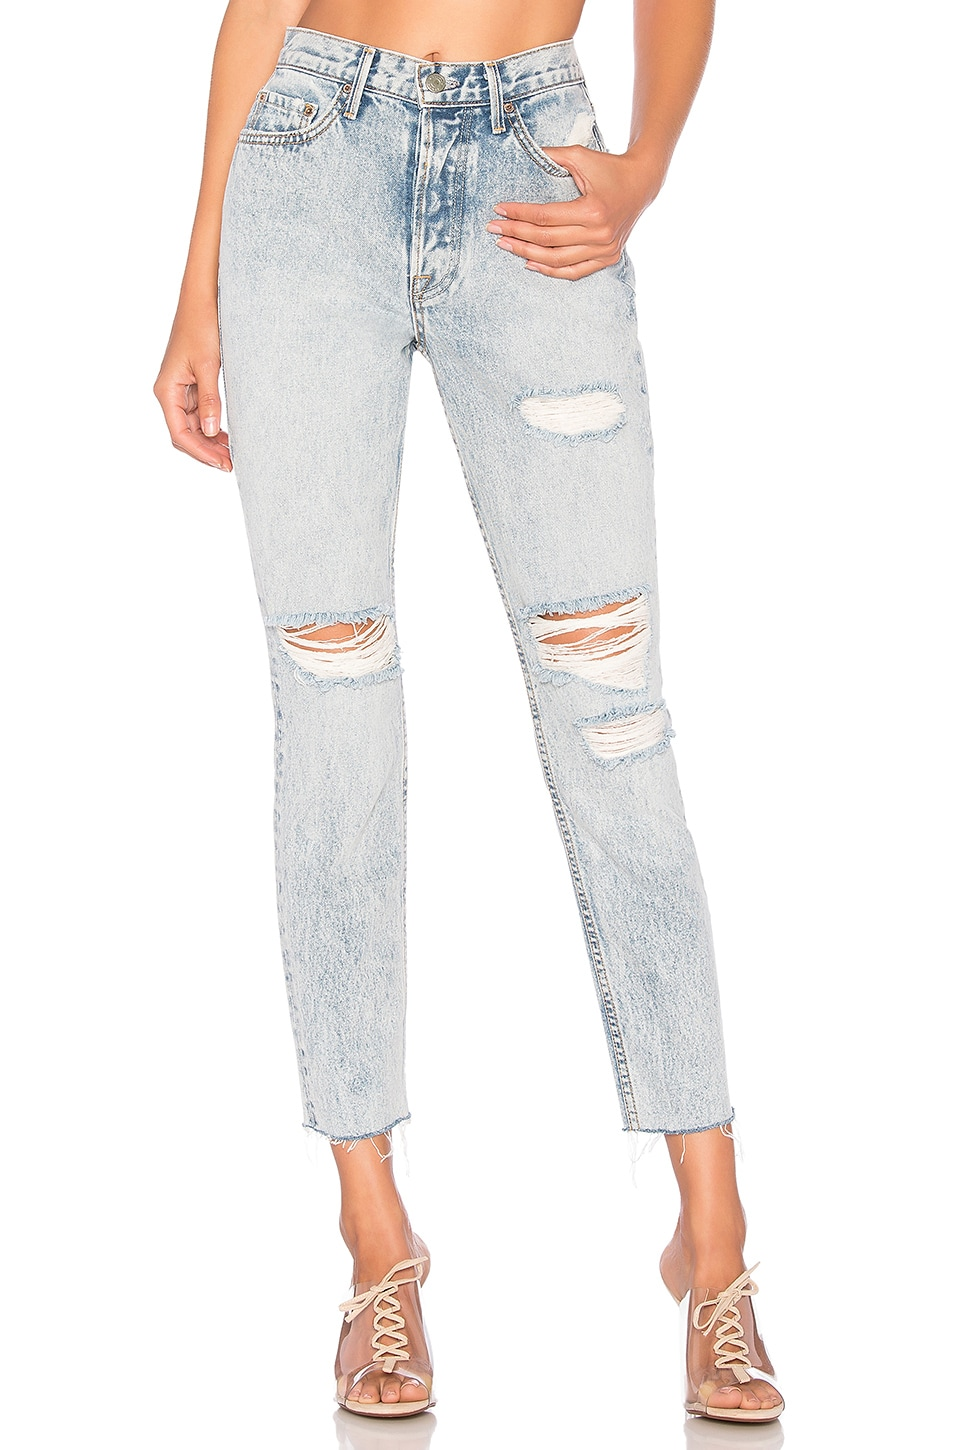 GRLFRND Karolina High-Rise Skinny Jean in Reactive